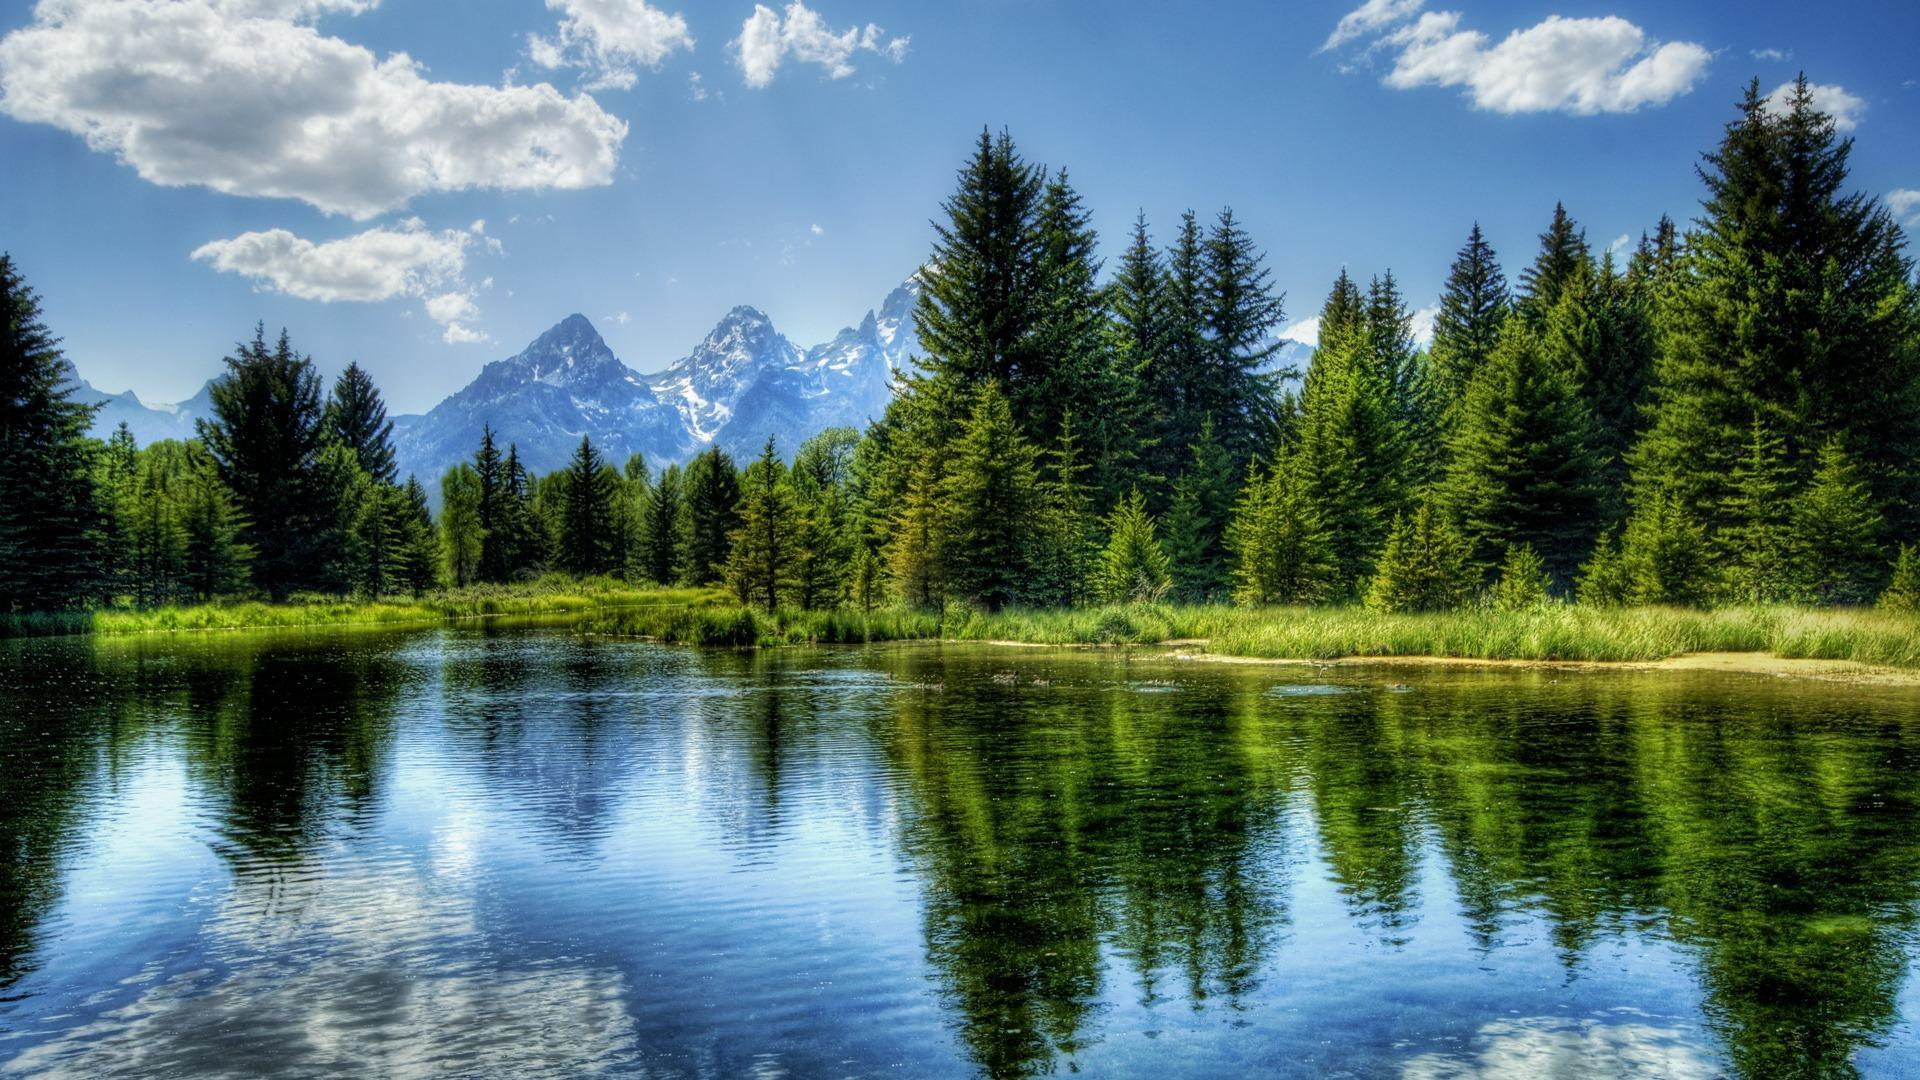 Hd Landscape Wallpaper For Android Apk Download